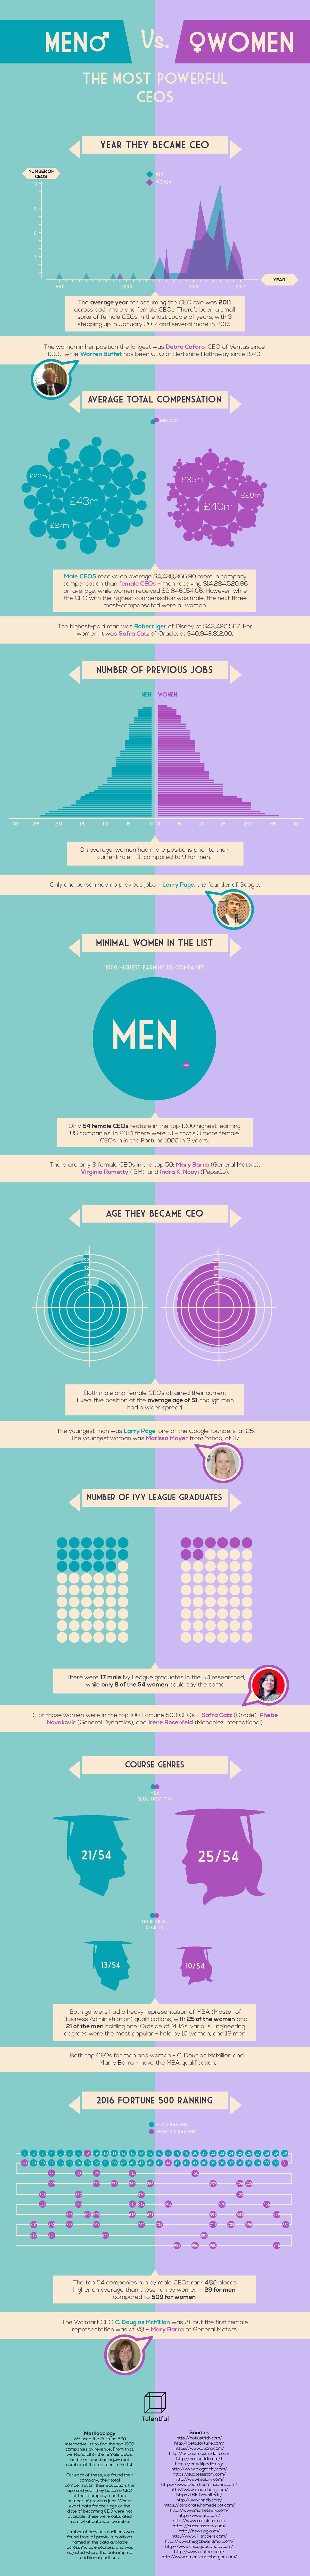 Men Vs. Women - The Most Powerful CEOs - Infographic